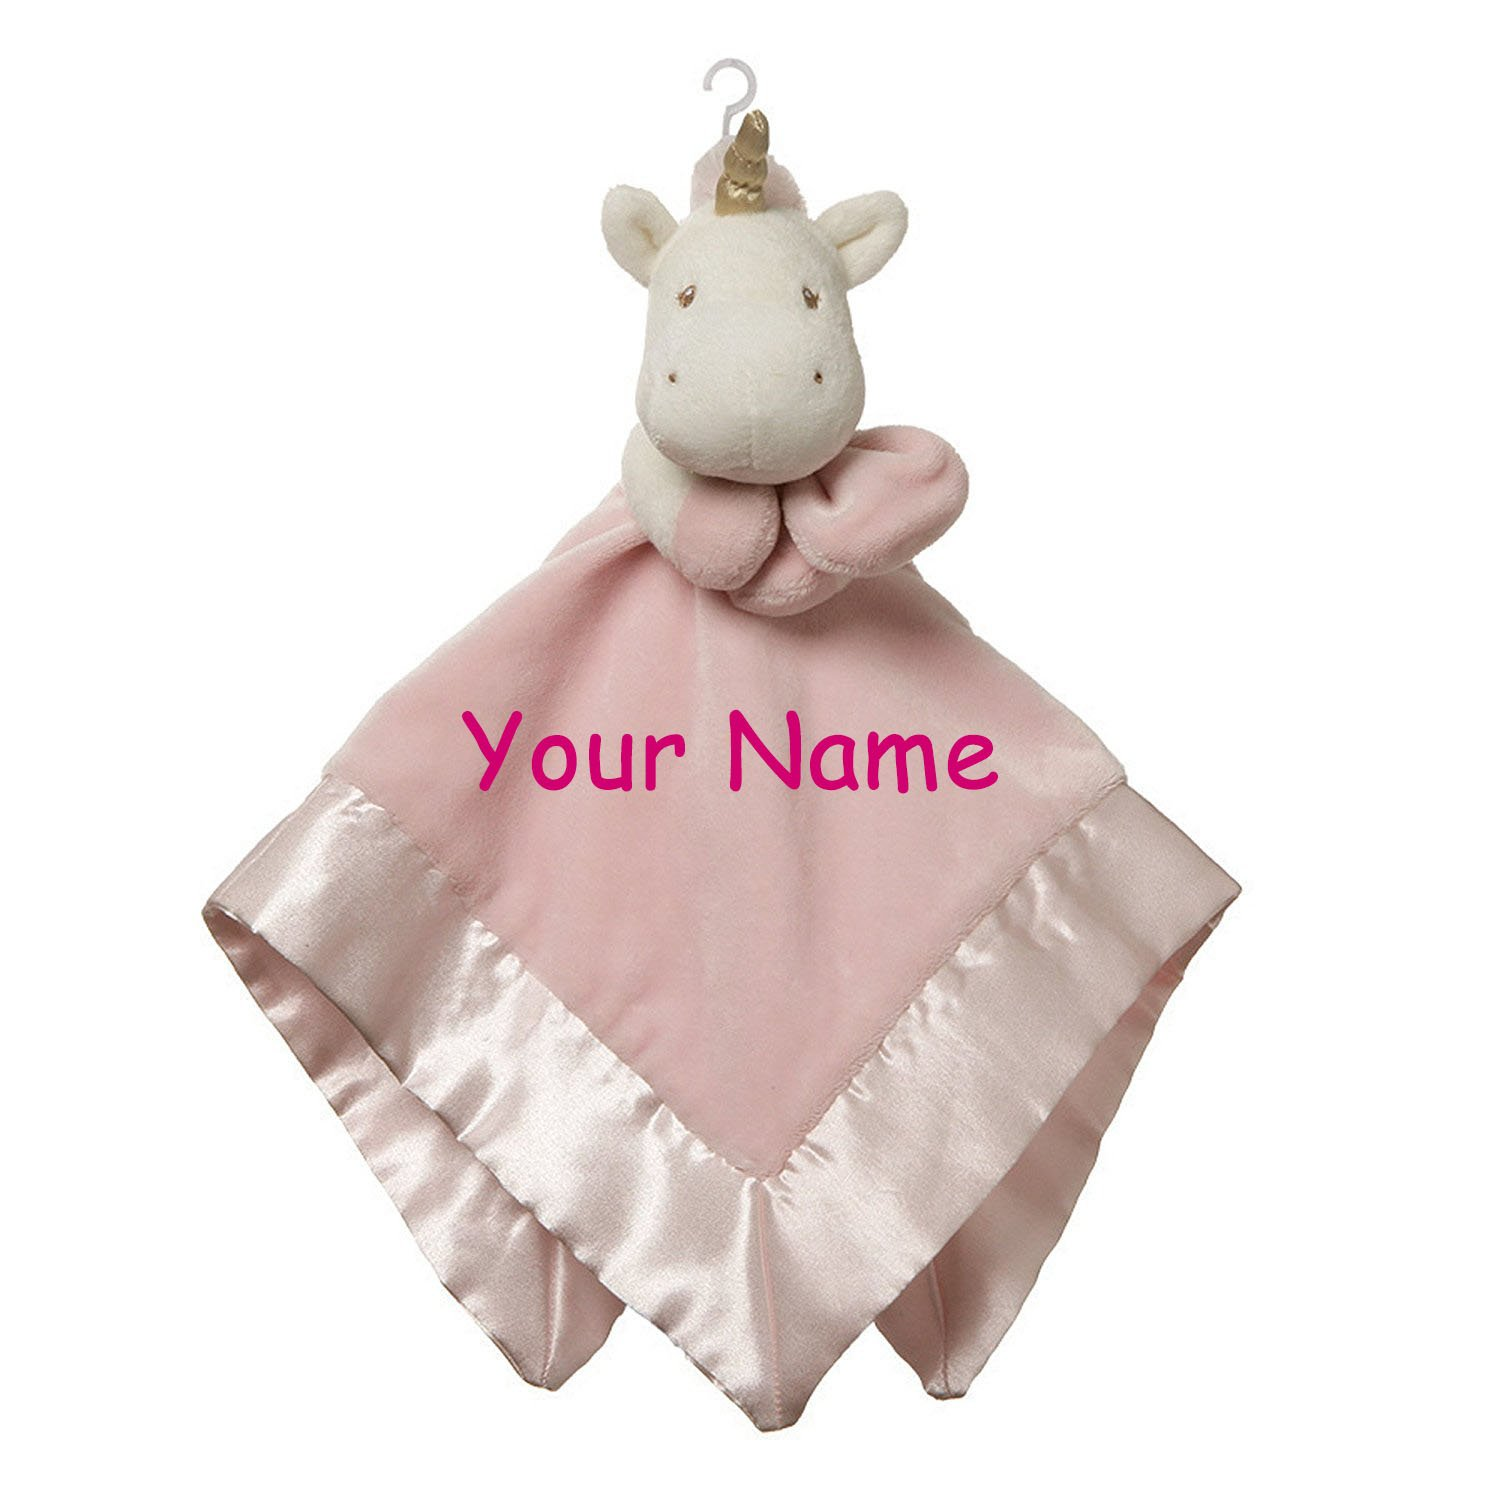 Personalized Luna Unicorn Lovey with Pink Snuggle Blanket for Baby Girl - 20 Inches